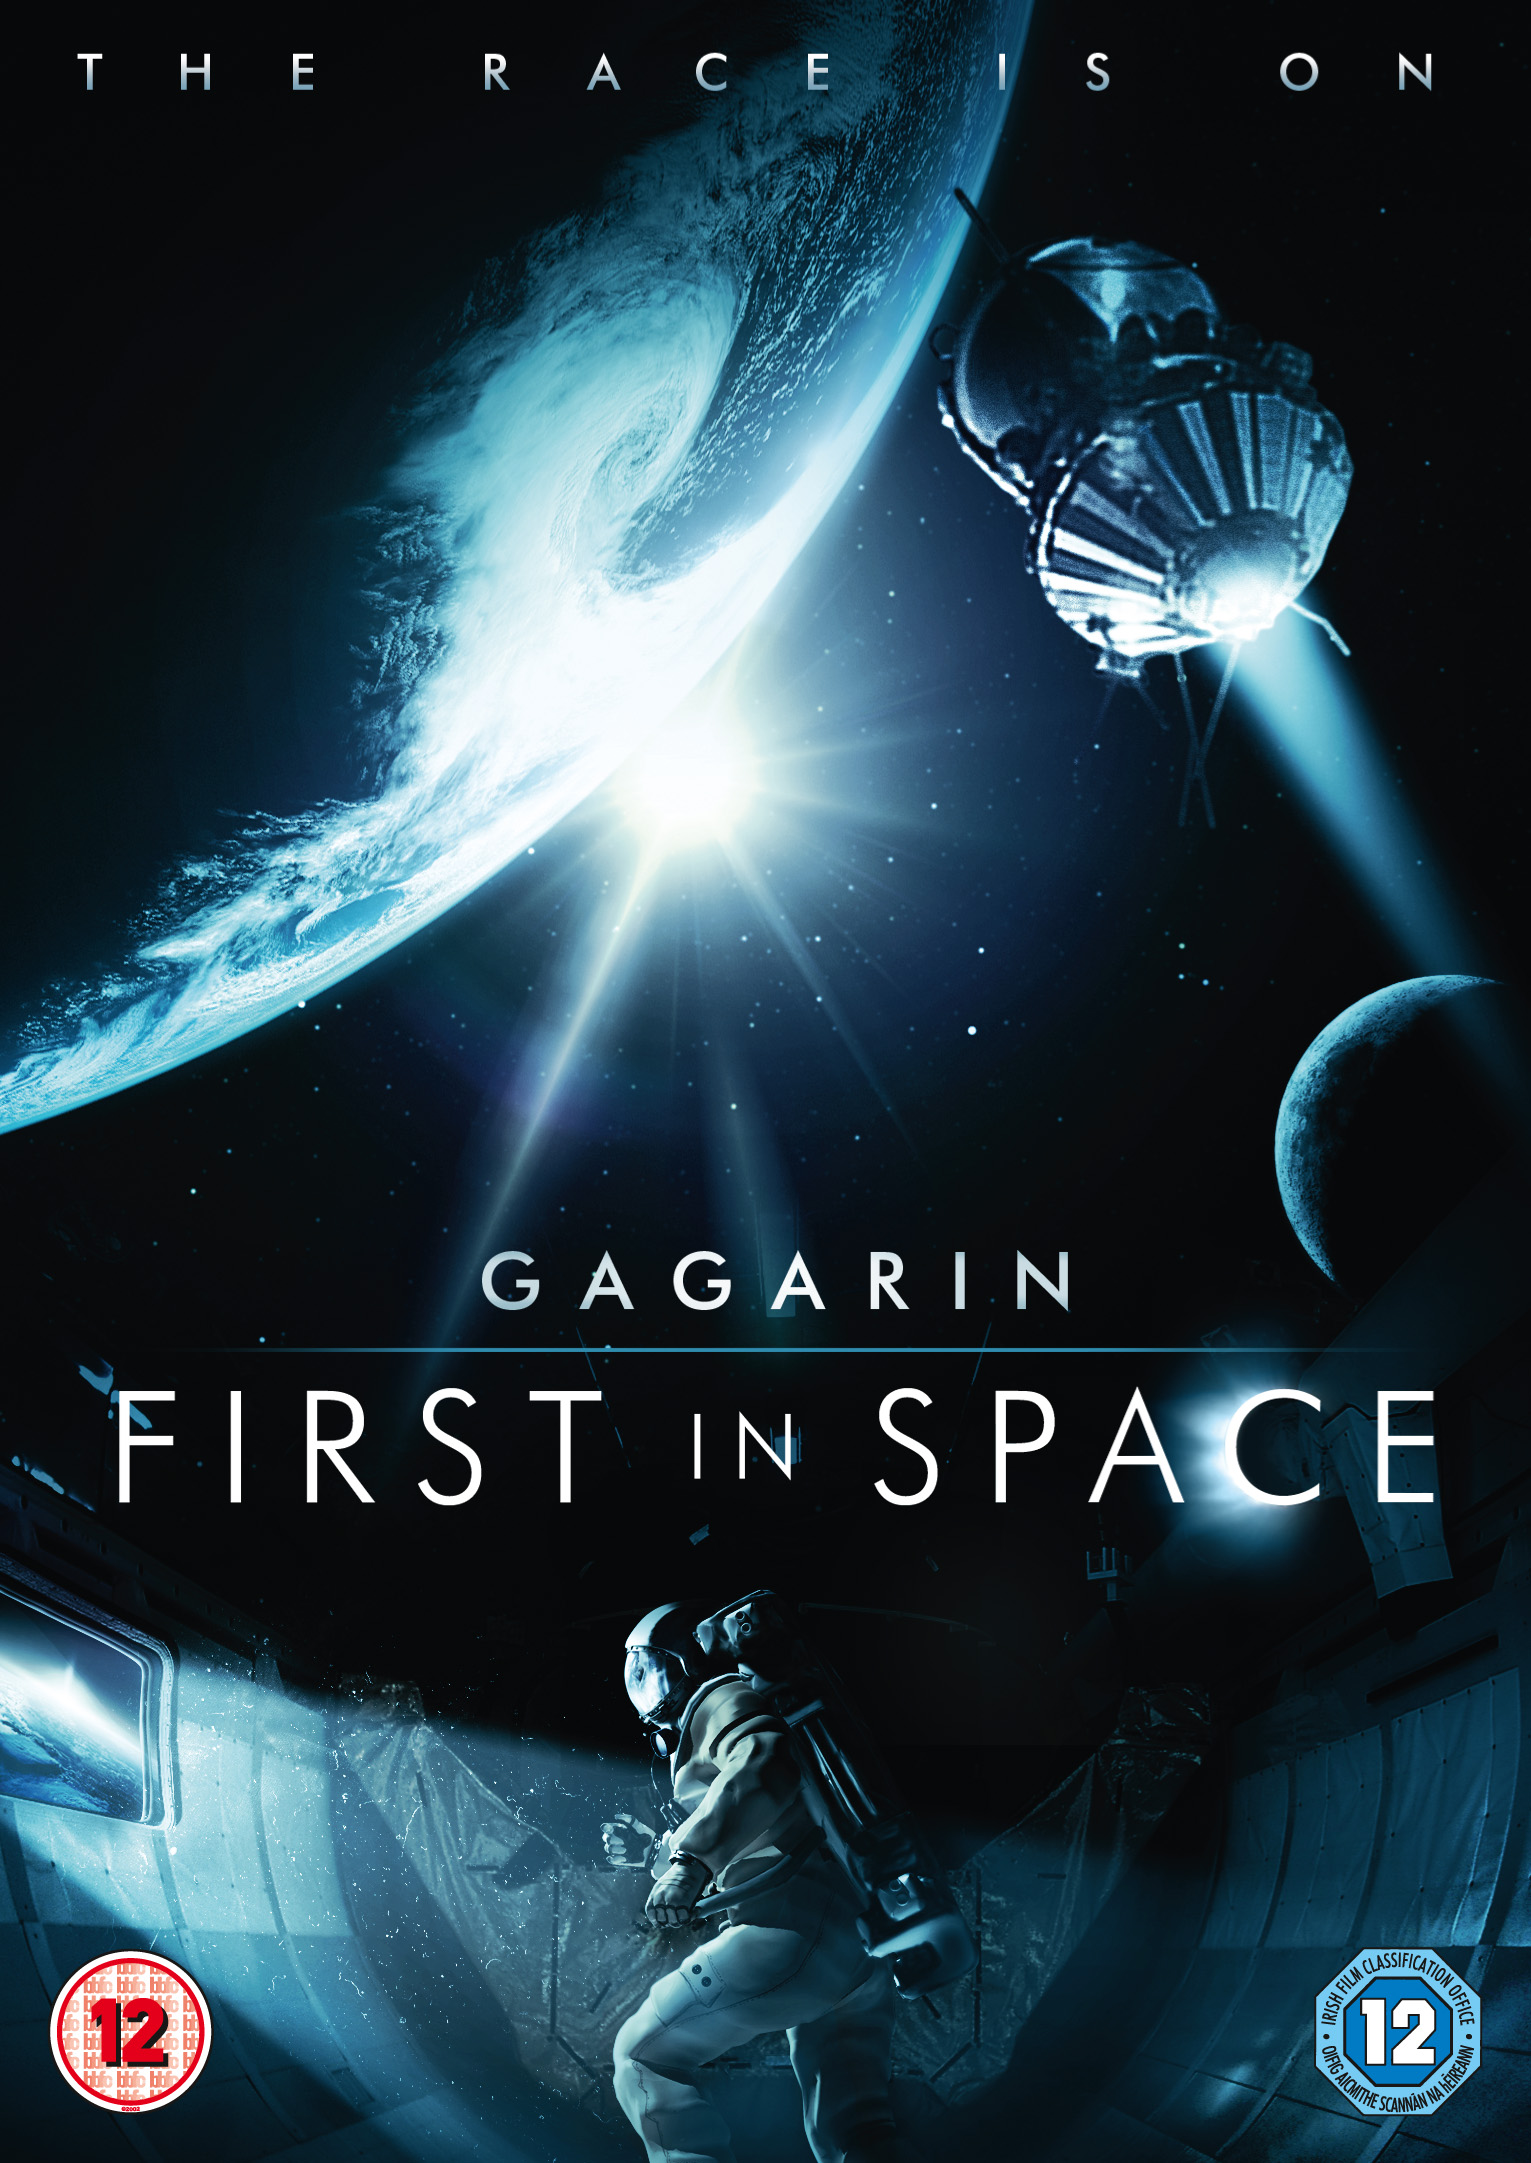 Gagarin: First In Space - Fetch Publicity